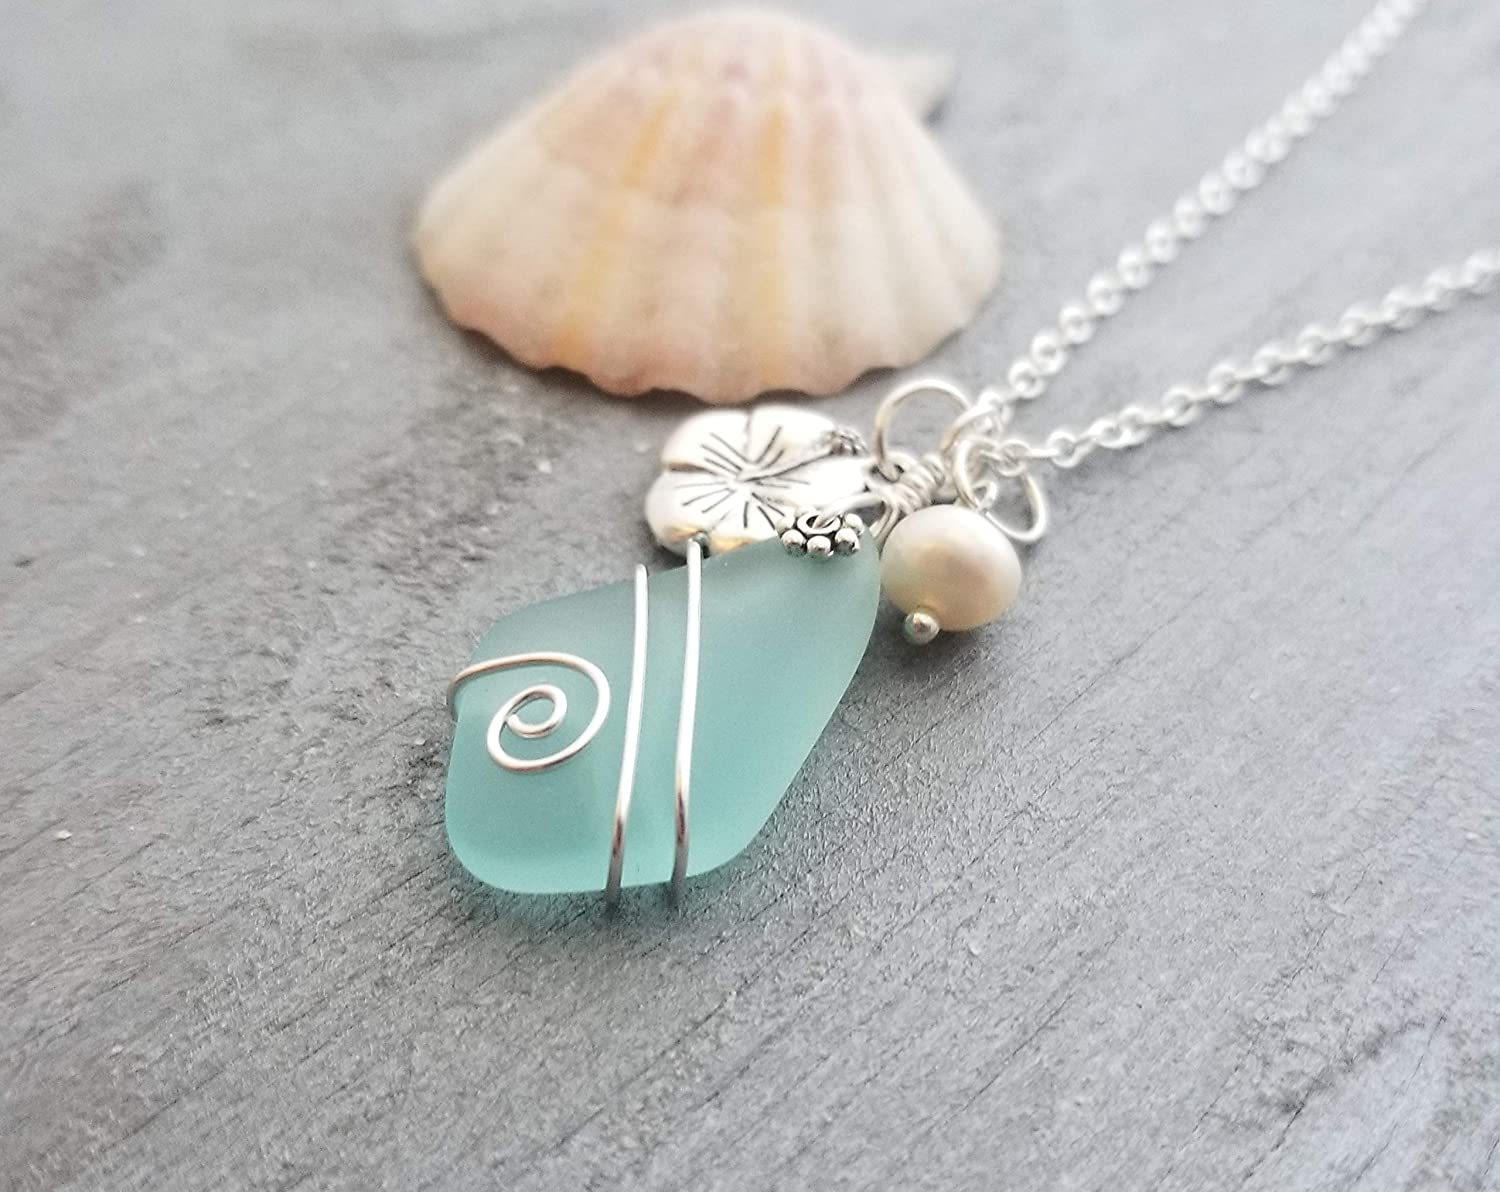 HIbiscus Freshwater Pearl Hawaii Gift Wrapped, Customizable Gift Message Wire wrapped Aqua sea glass necklace,March Birthstone Handmade in Hawaii